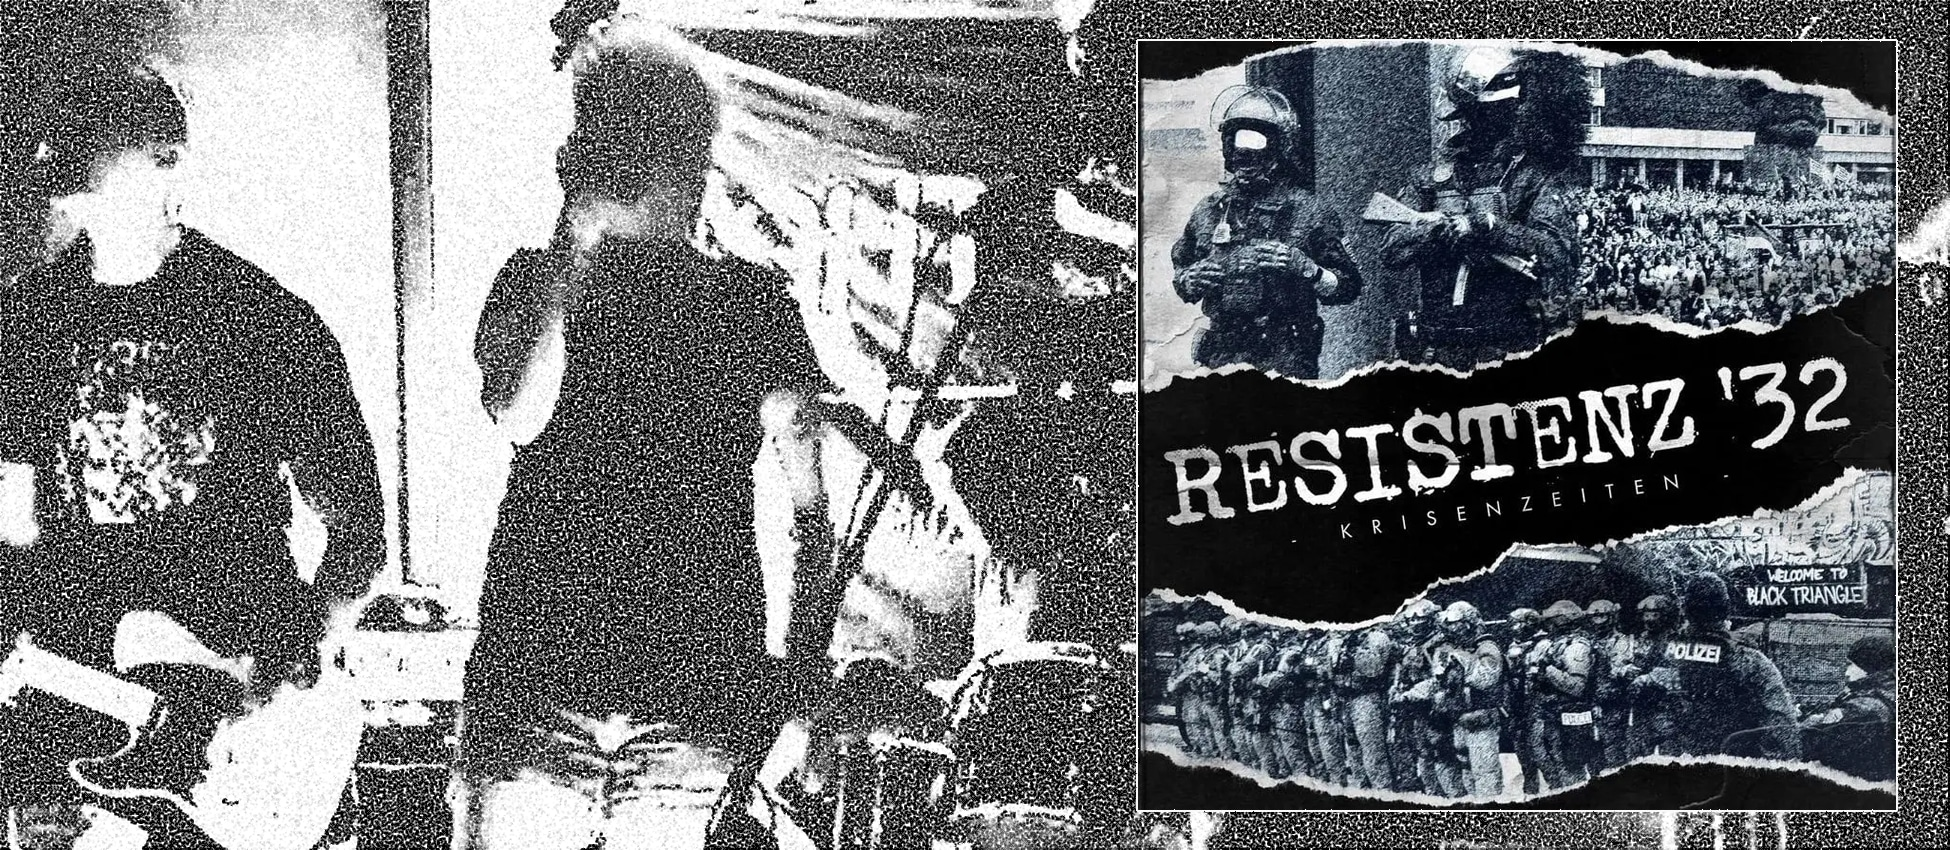 [FFM084] Resistenz '32 – Krisenzeiten LP OUT NOW!